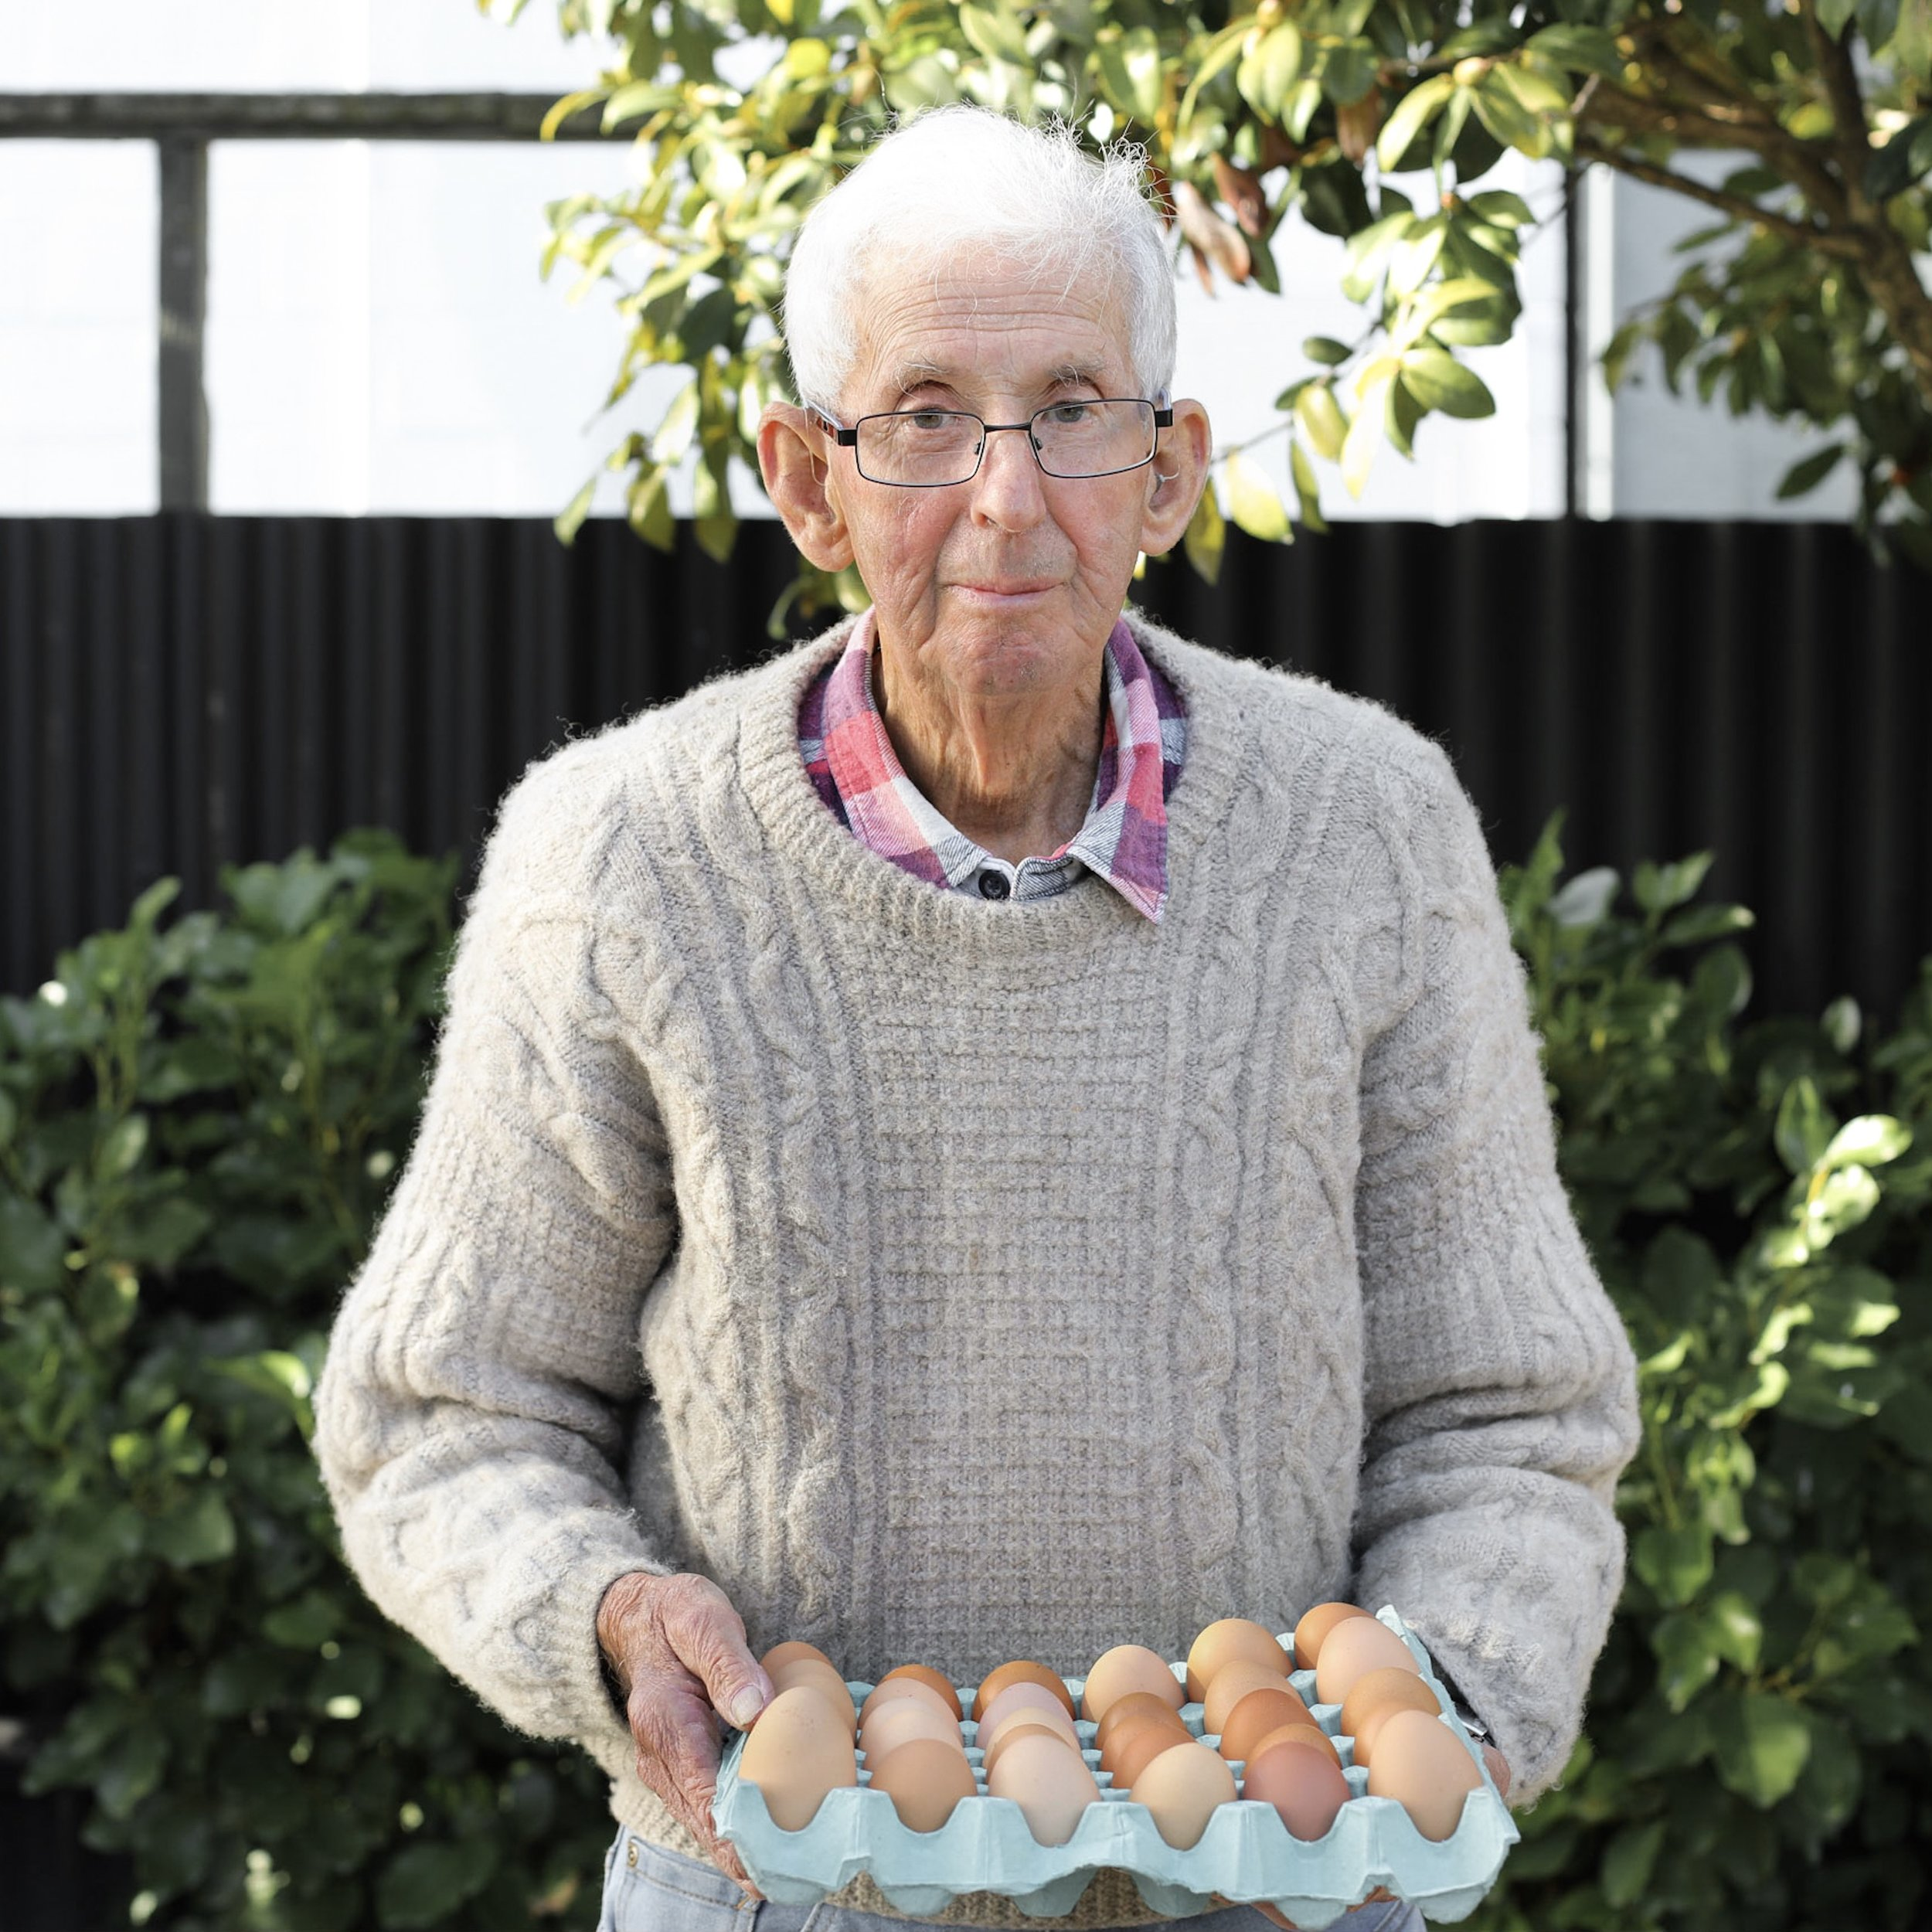 Bill from the hill - Bill is our egg man, and what a hero he is. Bill raises his red shavers at his home up Reikiorangi. They run free up the hill, laying their eggs happily. Bill then brings them down to us for Fi to whip up some of your favourite dishes.